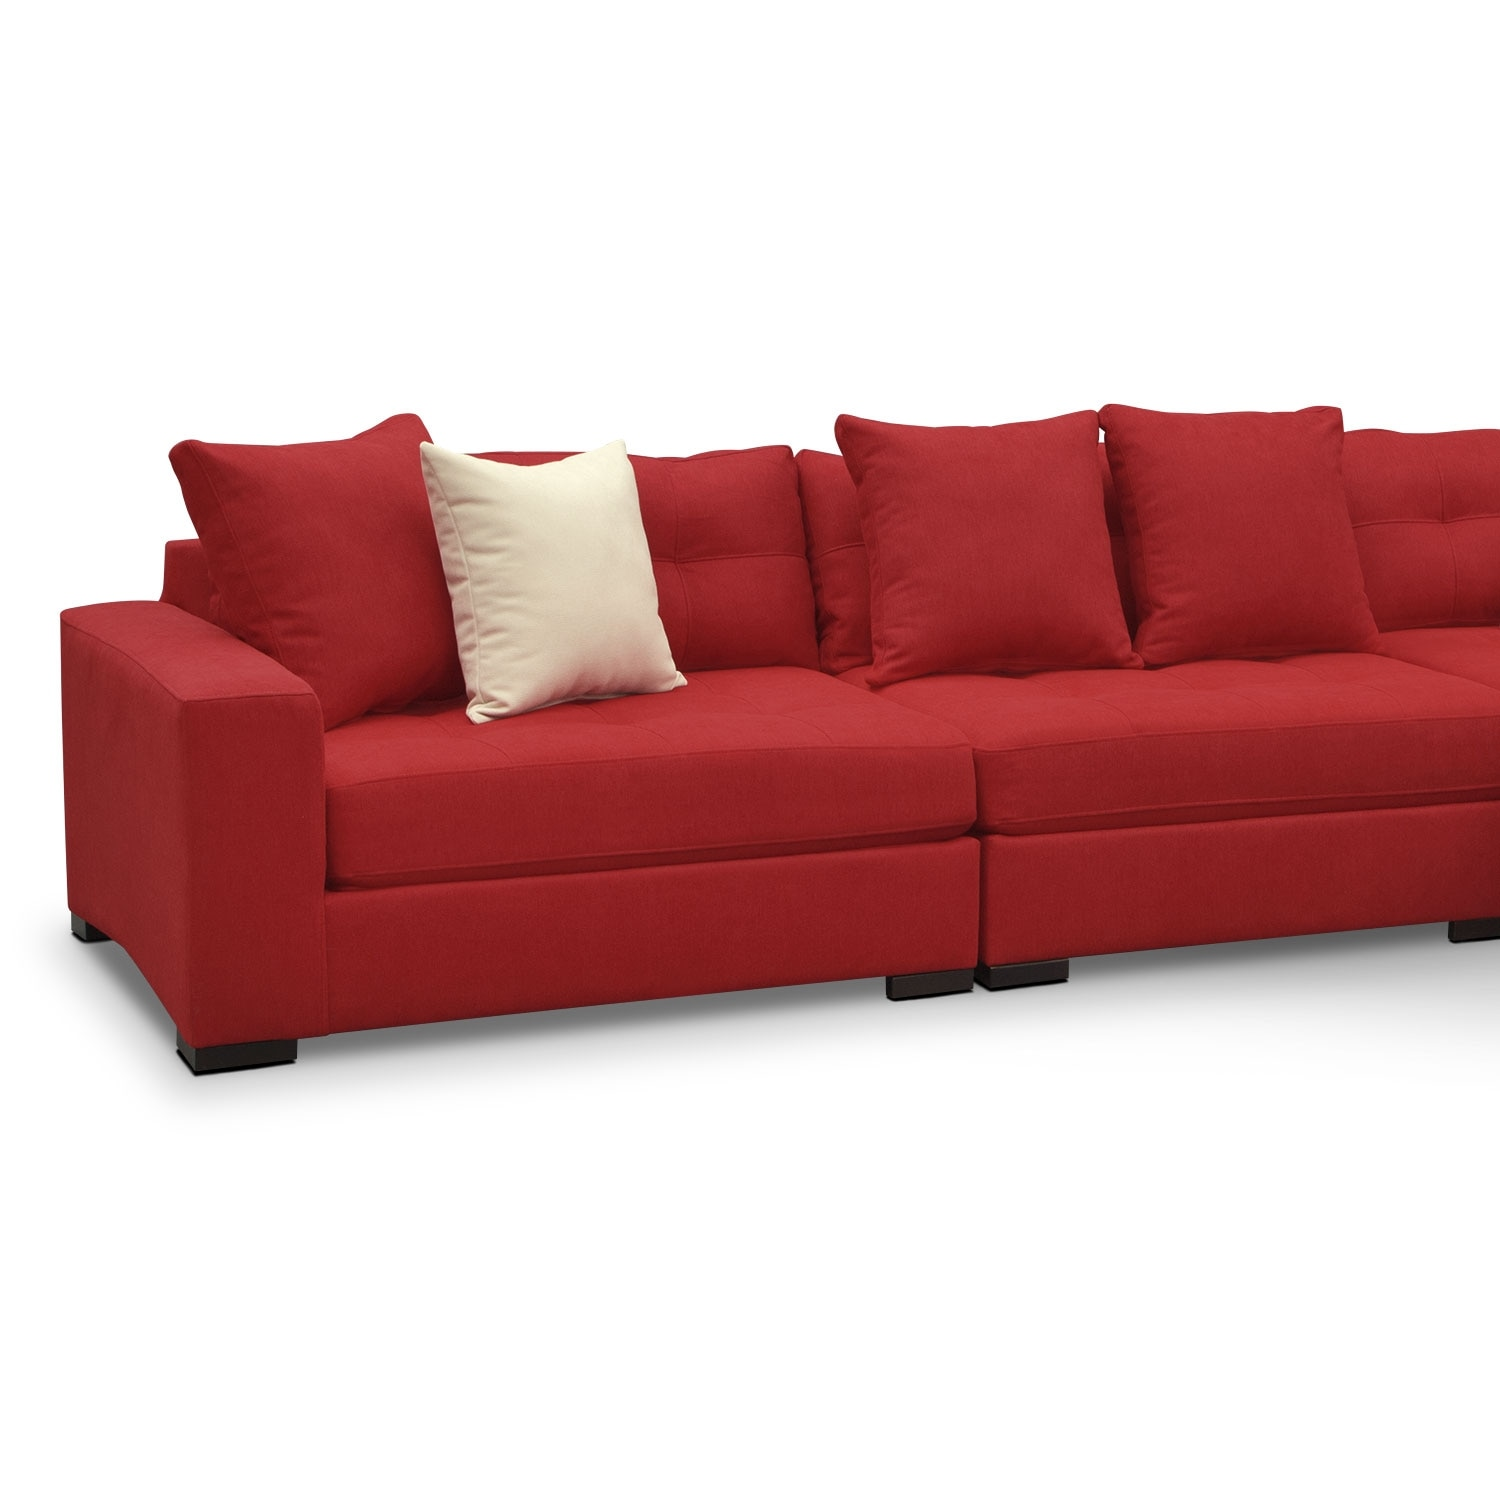 Venti 4 piece sectional red value city furniture for Red sectional sofa value city